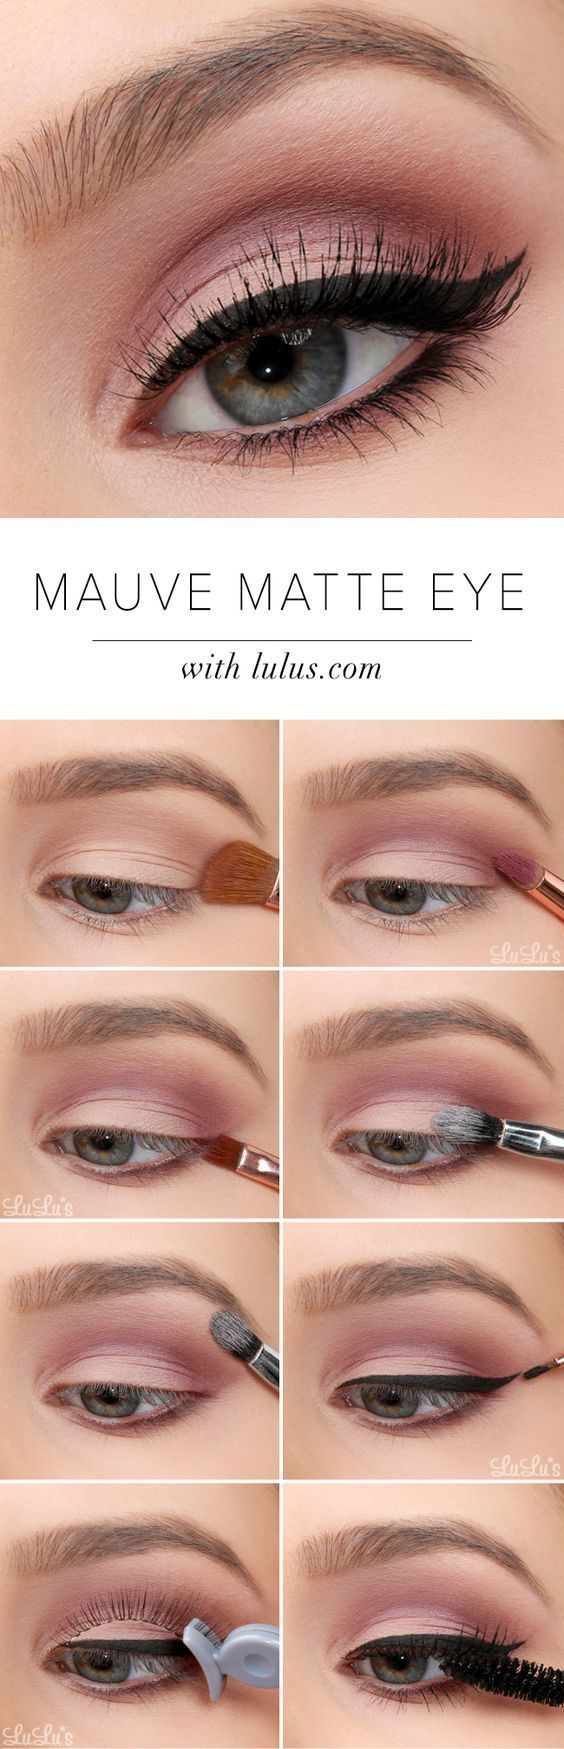 25 unique easy eyeshadow tutorial ideas on pinterest easy 5 reasons why cleaning your makeup brushes is important ccuart Images